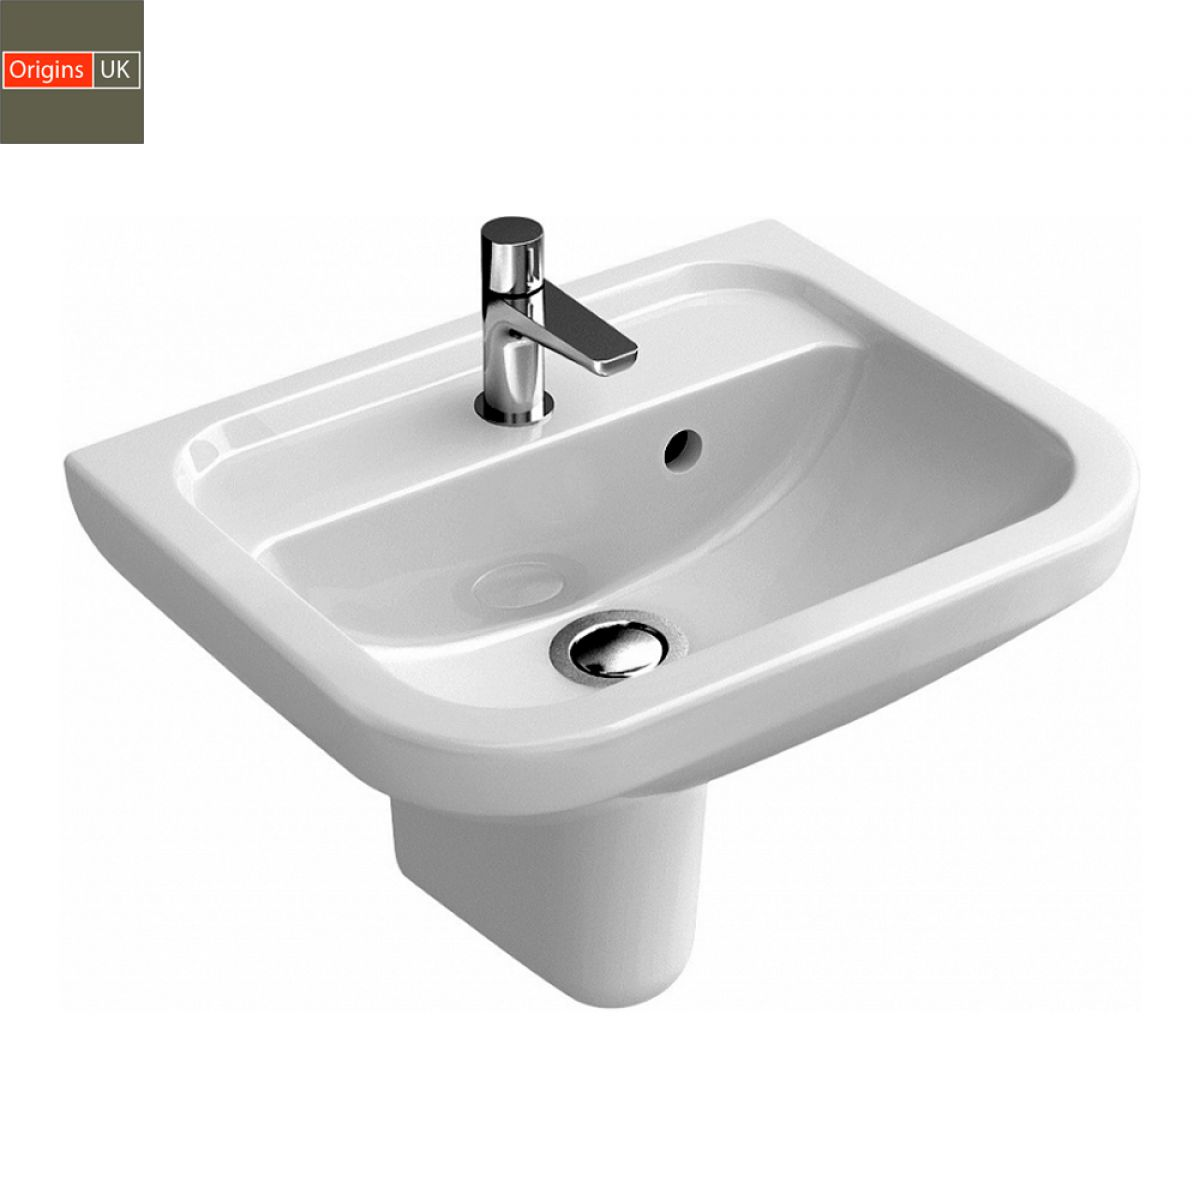 Origins Curve Compact Bathroom Basin - UK Bathrooms